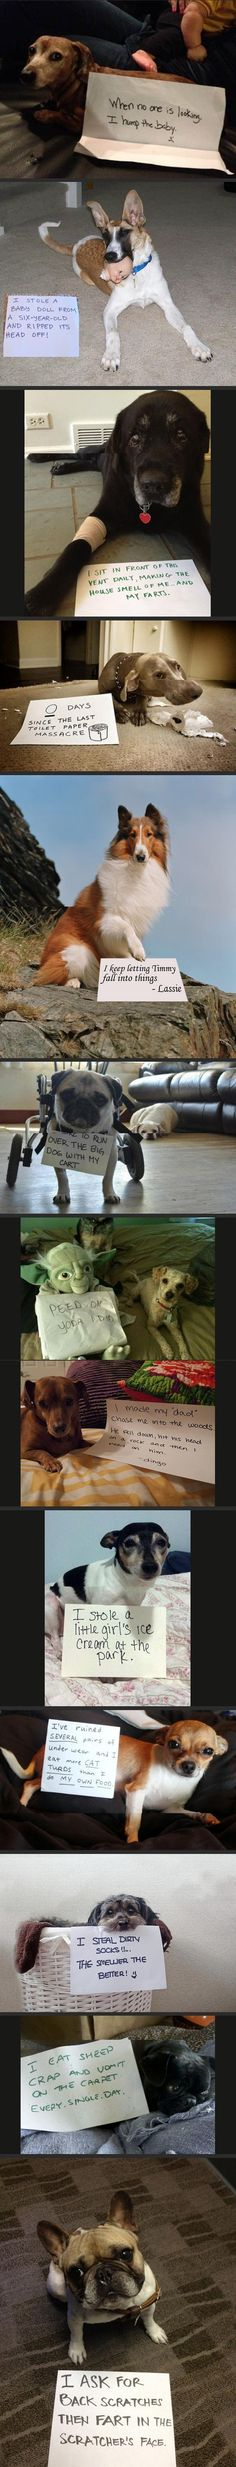 Dog Shaming the link has hilarious images too! I want to do this to our dog, but my husband wont let me :(